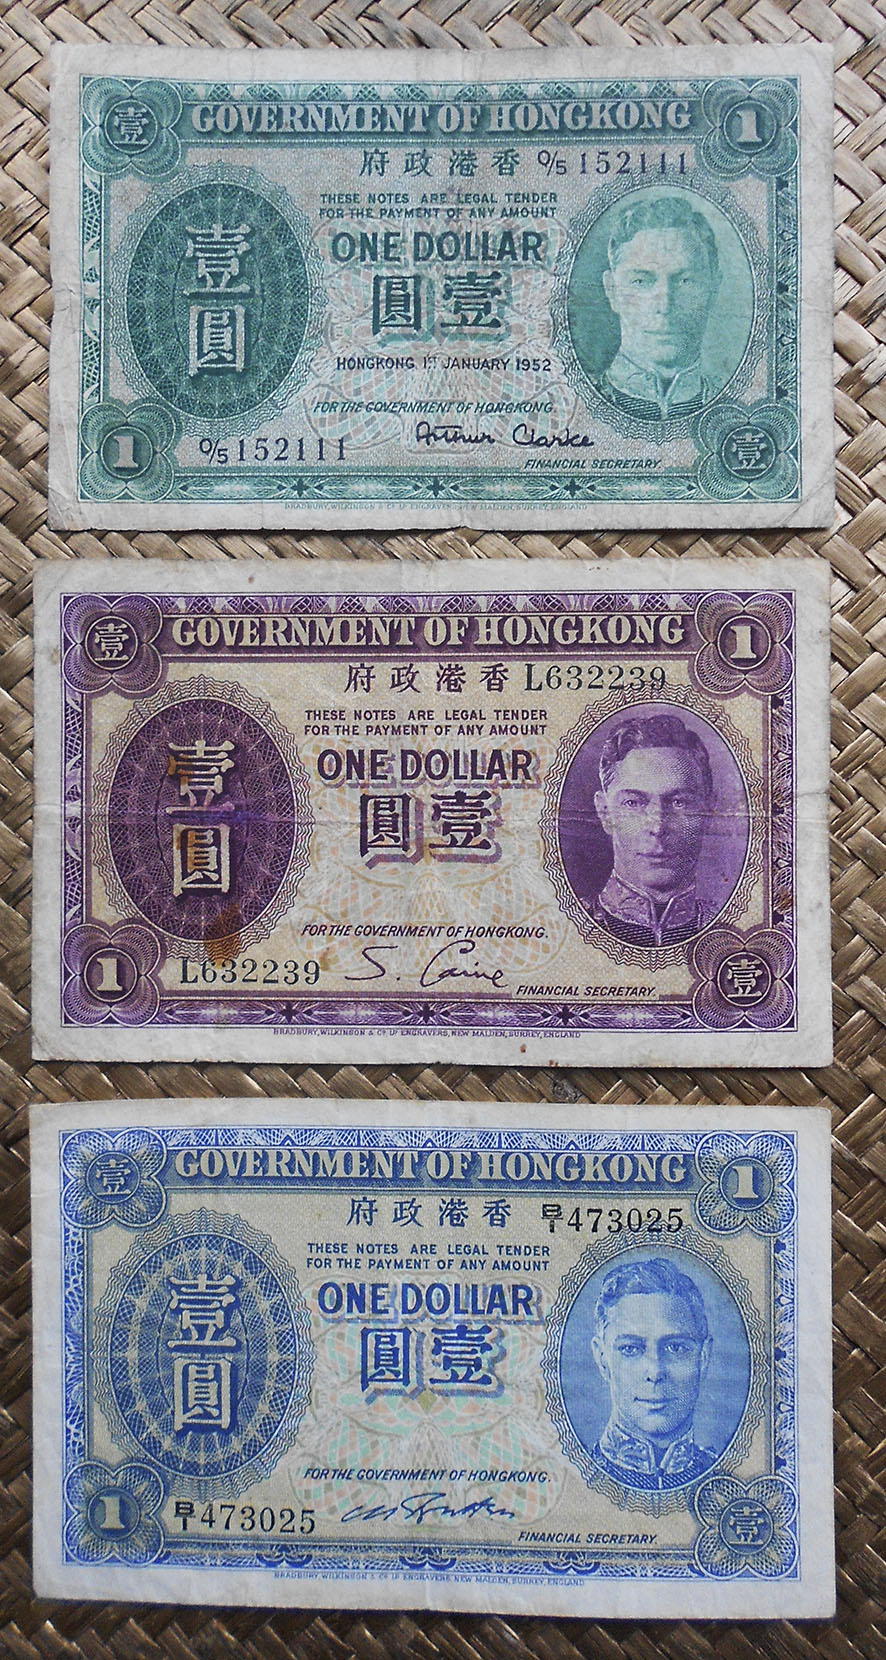 Hong Kong 1 dollar 1952 vs. 1936 vs. 1941 George VI anversos